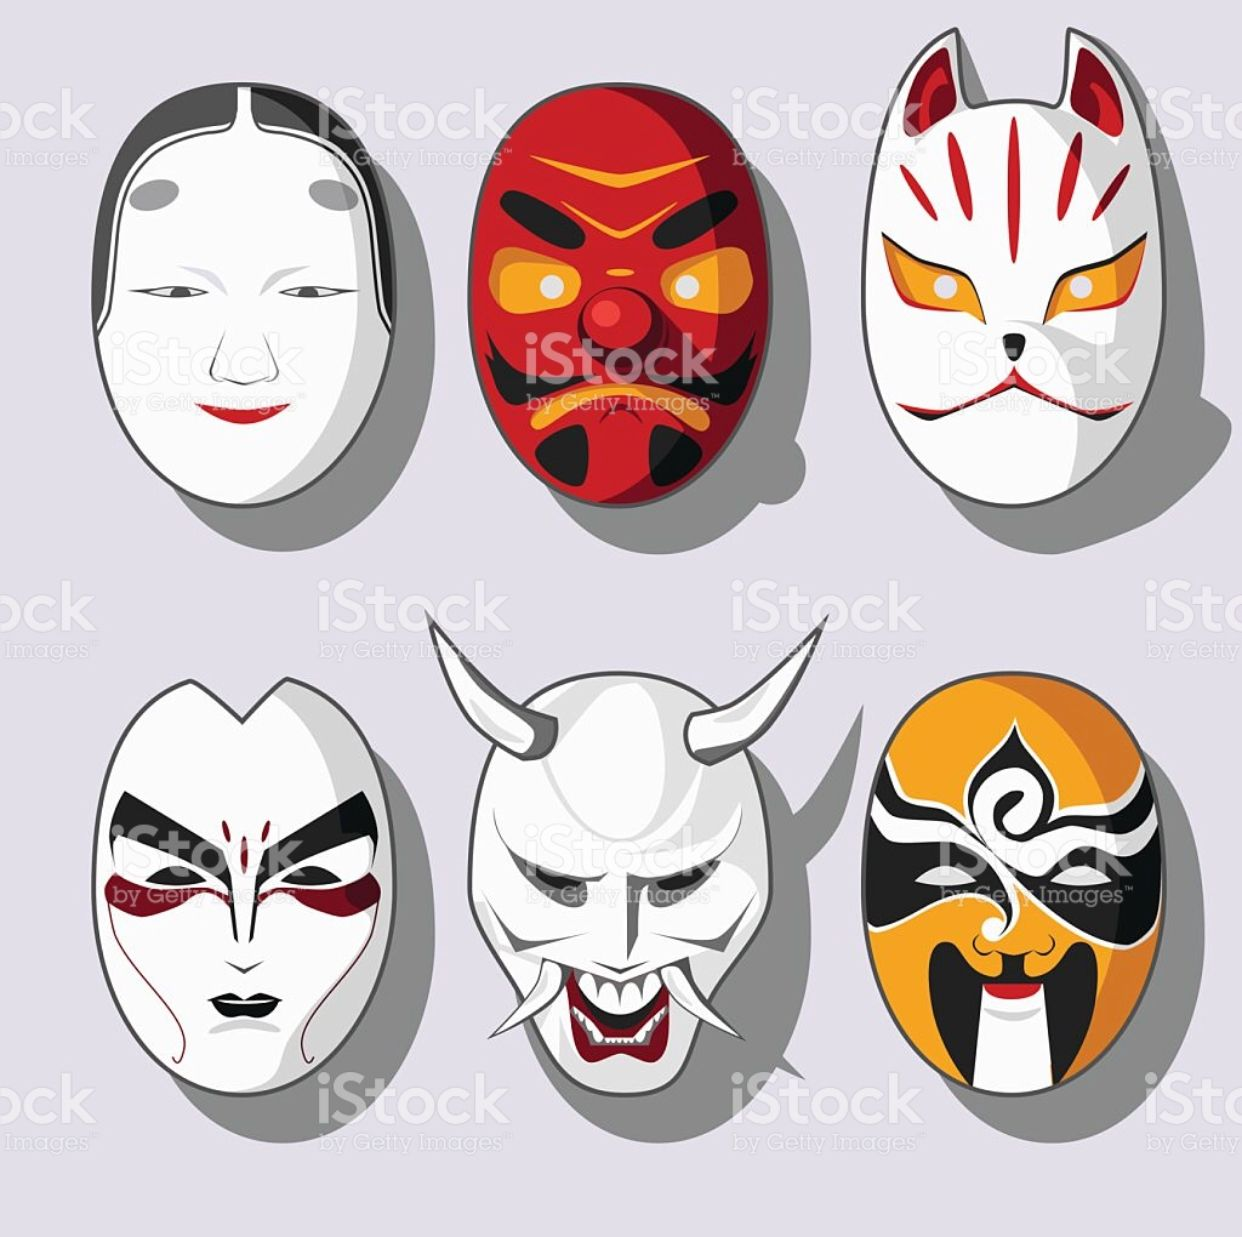 Pin by Larry Best on Rpg Japanese mask, Royalty free